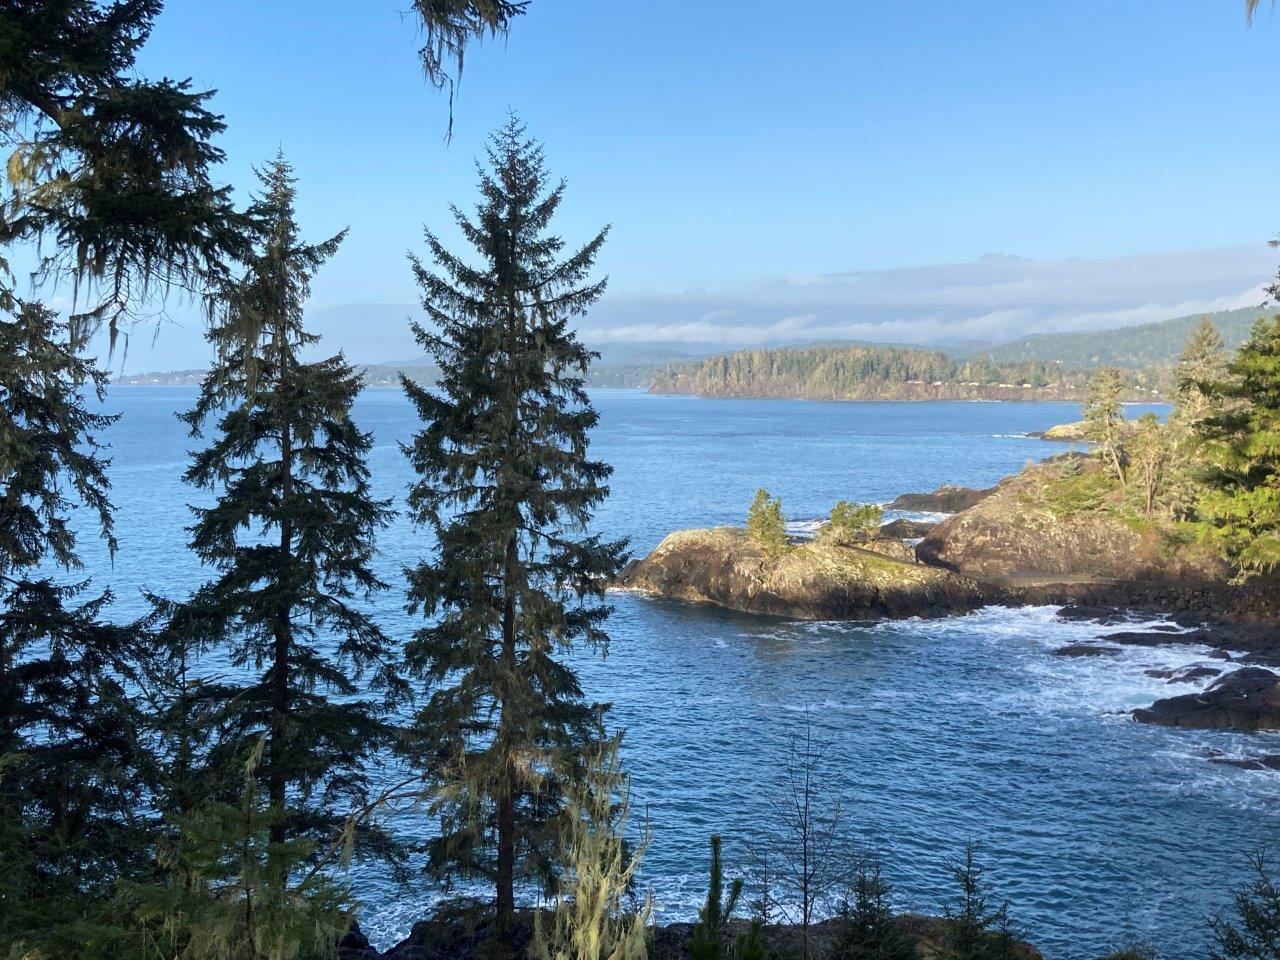 Trees in front of the ocean and rocky coastline in the East Sooke Park